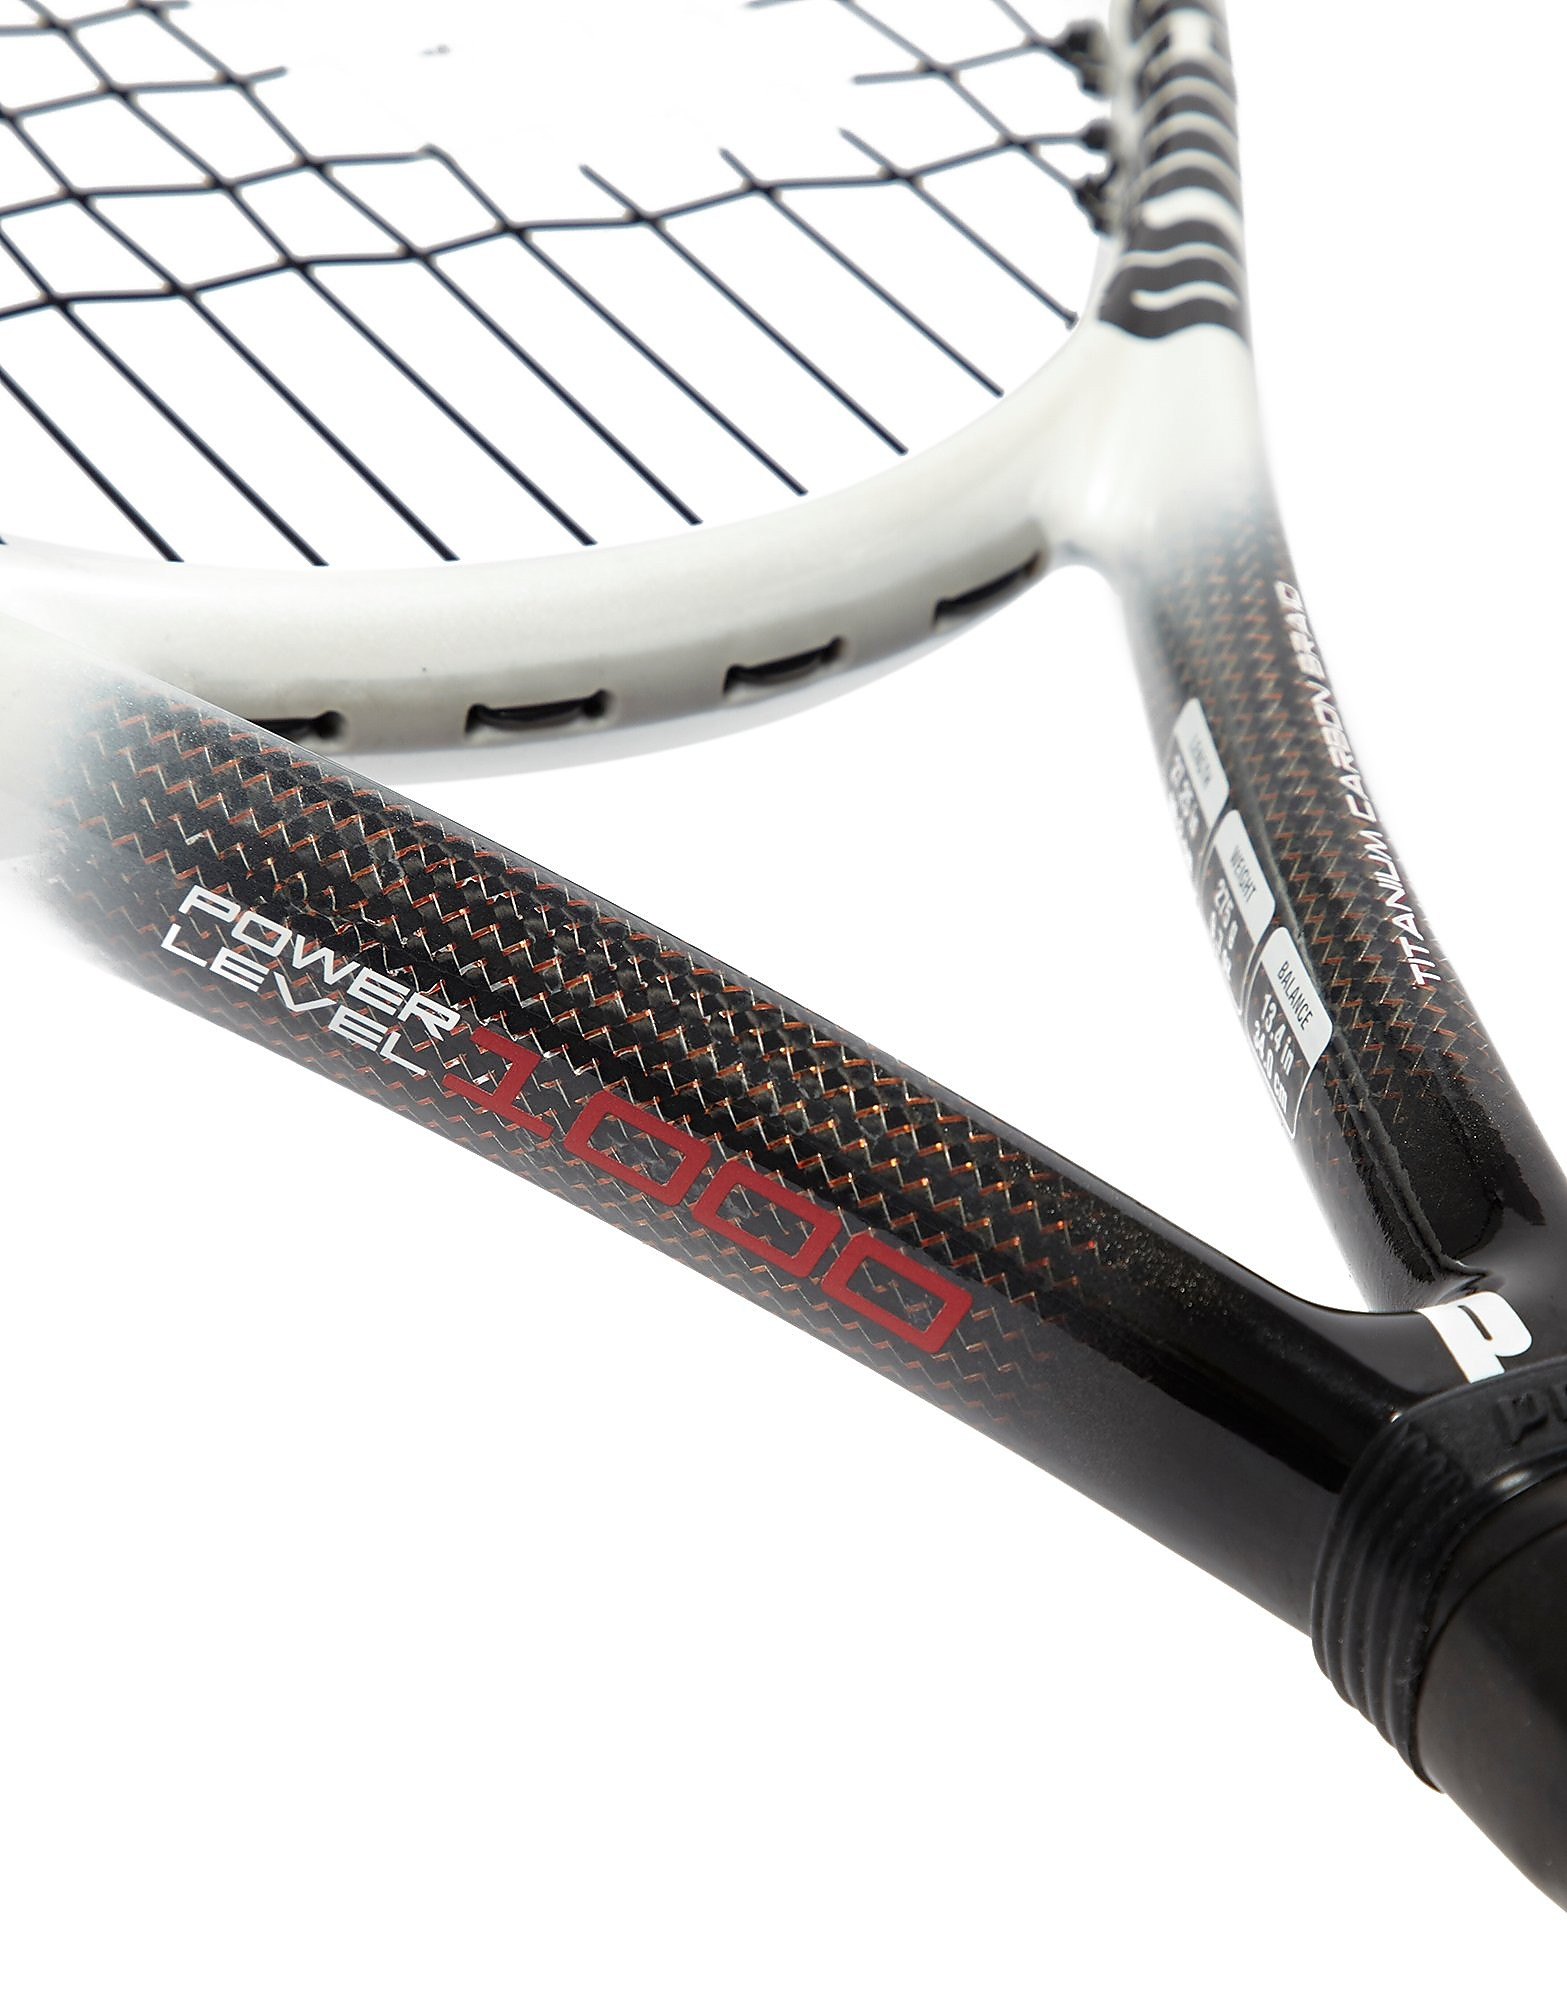 Prince Lightning 105 Tennis Racket